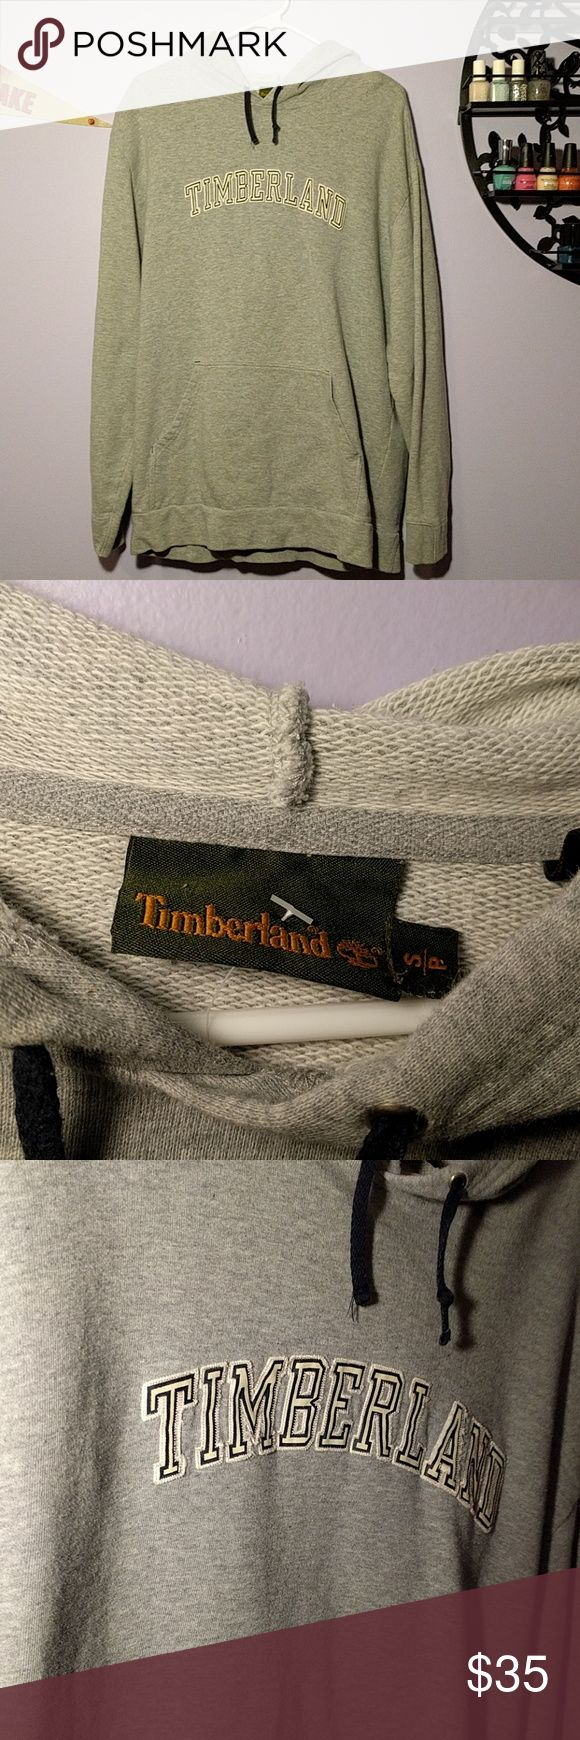 """Grey Timberland Hoodie *Grey Timberland Hoodie *Great casual look for men *Perfect for women looking for a long sweatshirt to pair with leggings *Used, in great condition *23"""" bust, 27"""" length 24"""" arm  Please feel free to make offers or ask questions!  xoxo Karlynn Timberland Shirts Sweatshirts & Hoodies"""